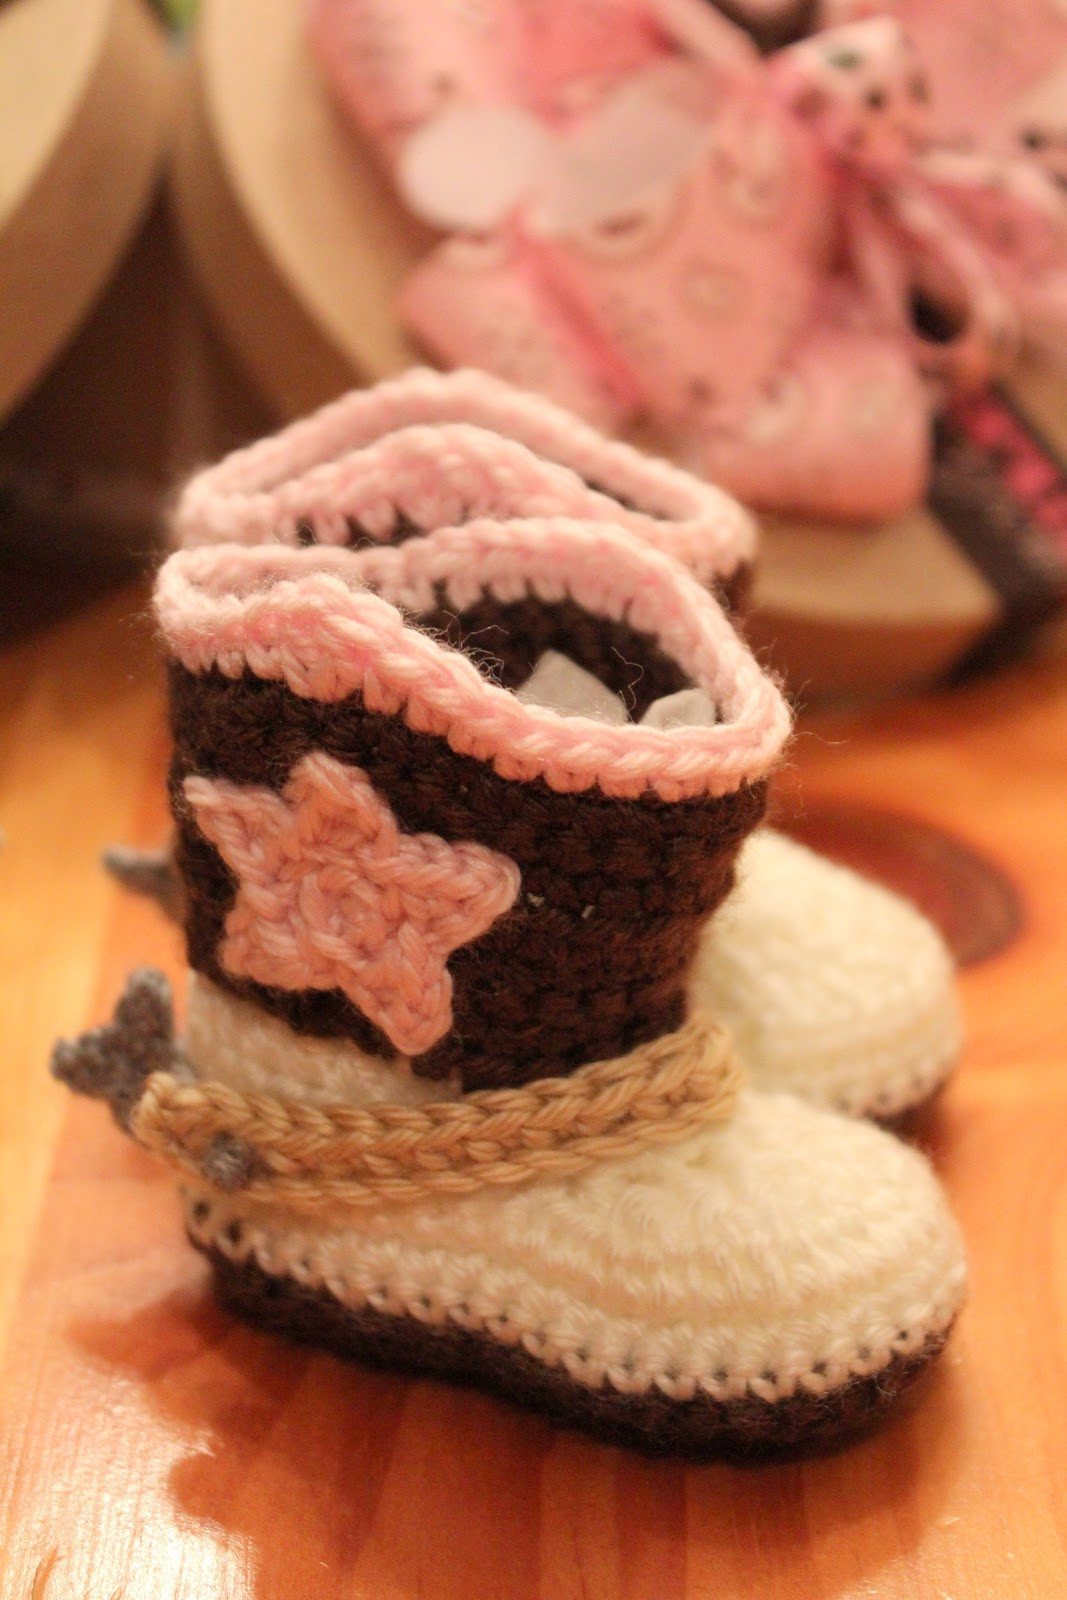 Crochet Cowboy Boots Lovely Crocheted Cowboy Boots & Breakfast Basket Of Marvelous 49 Pictures Crochet Cowboy Boots